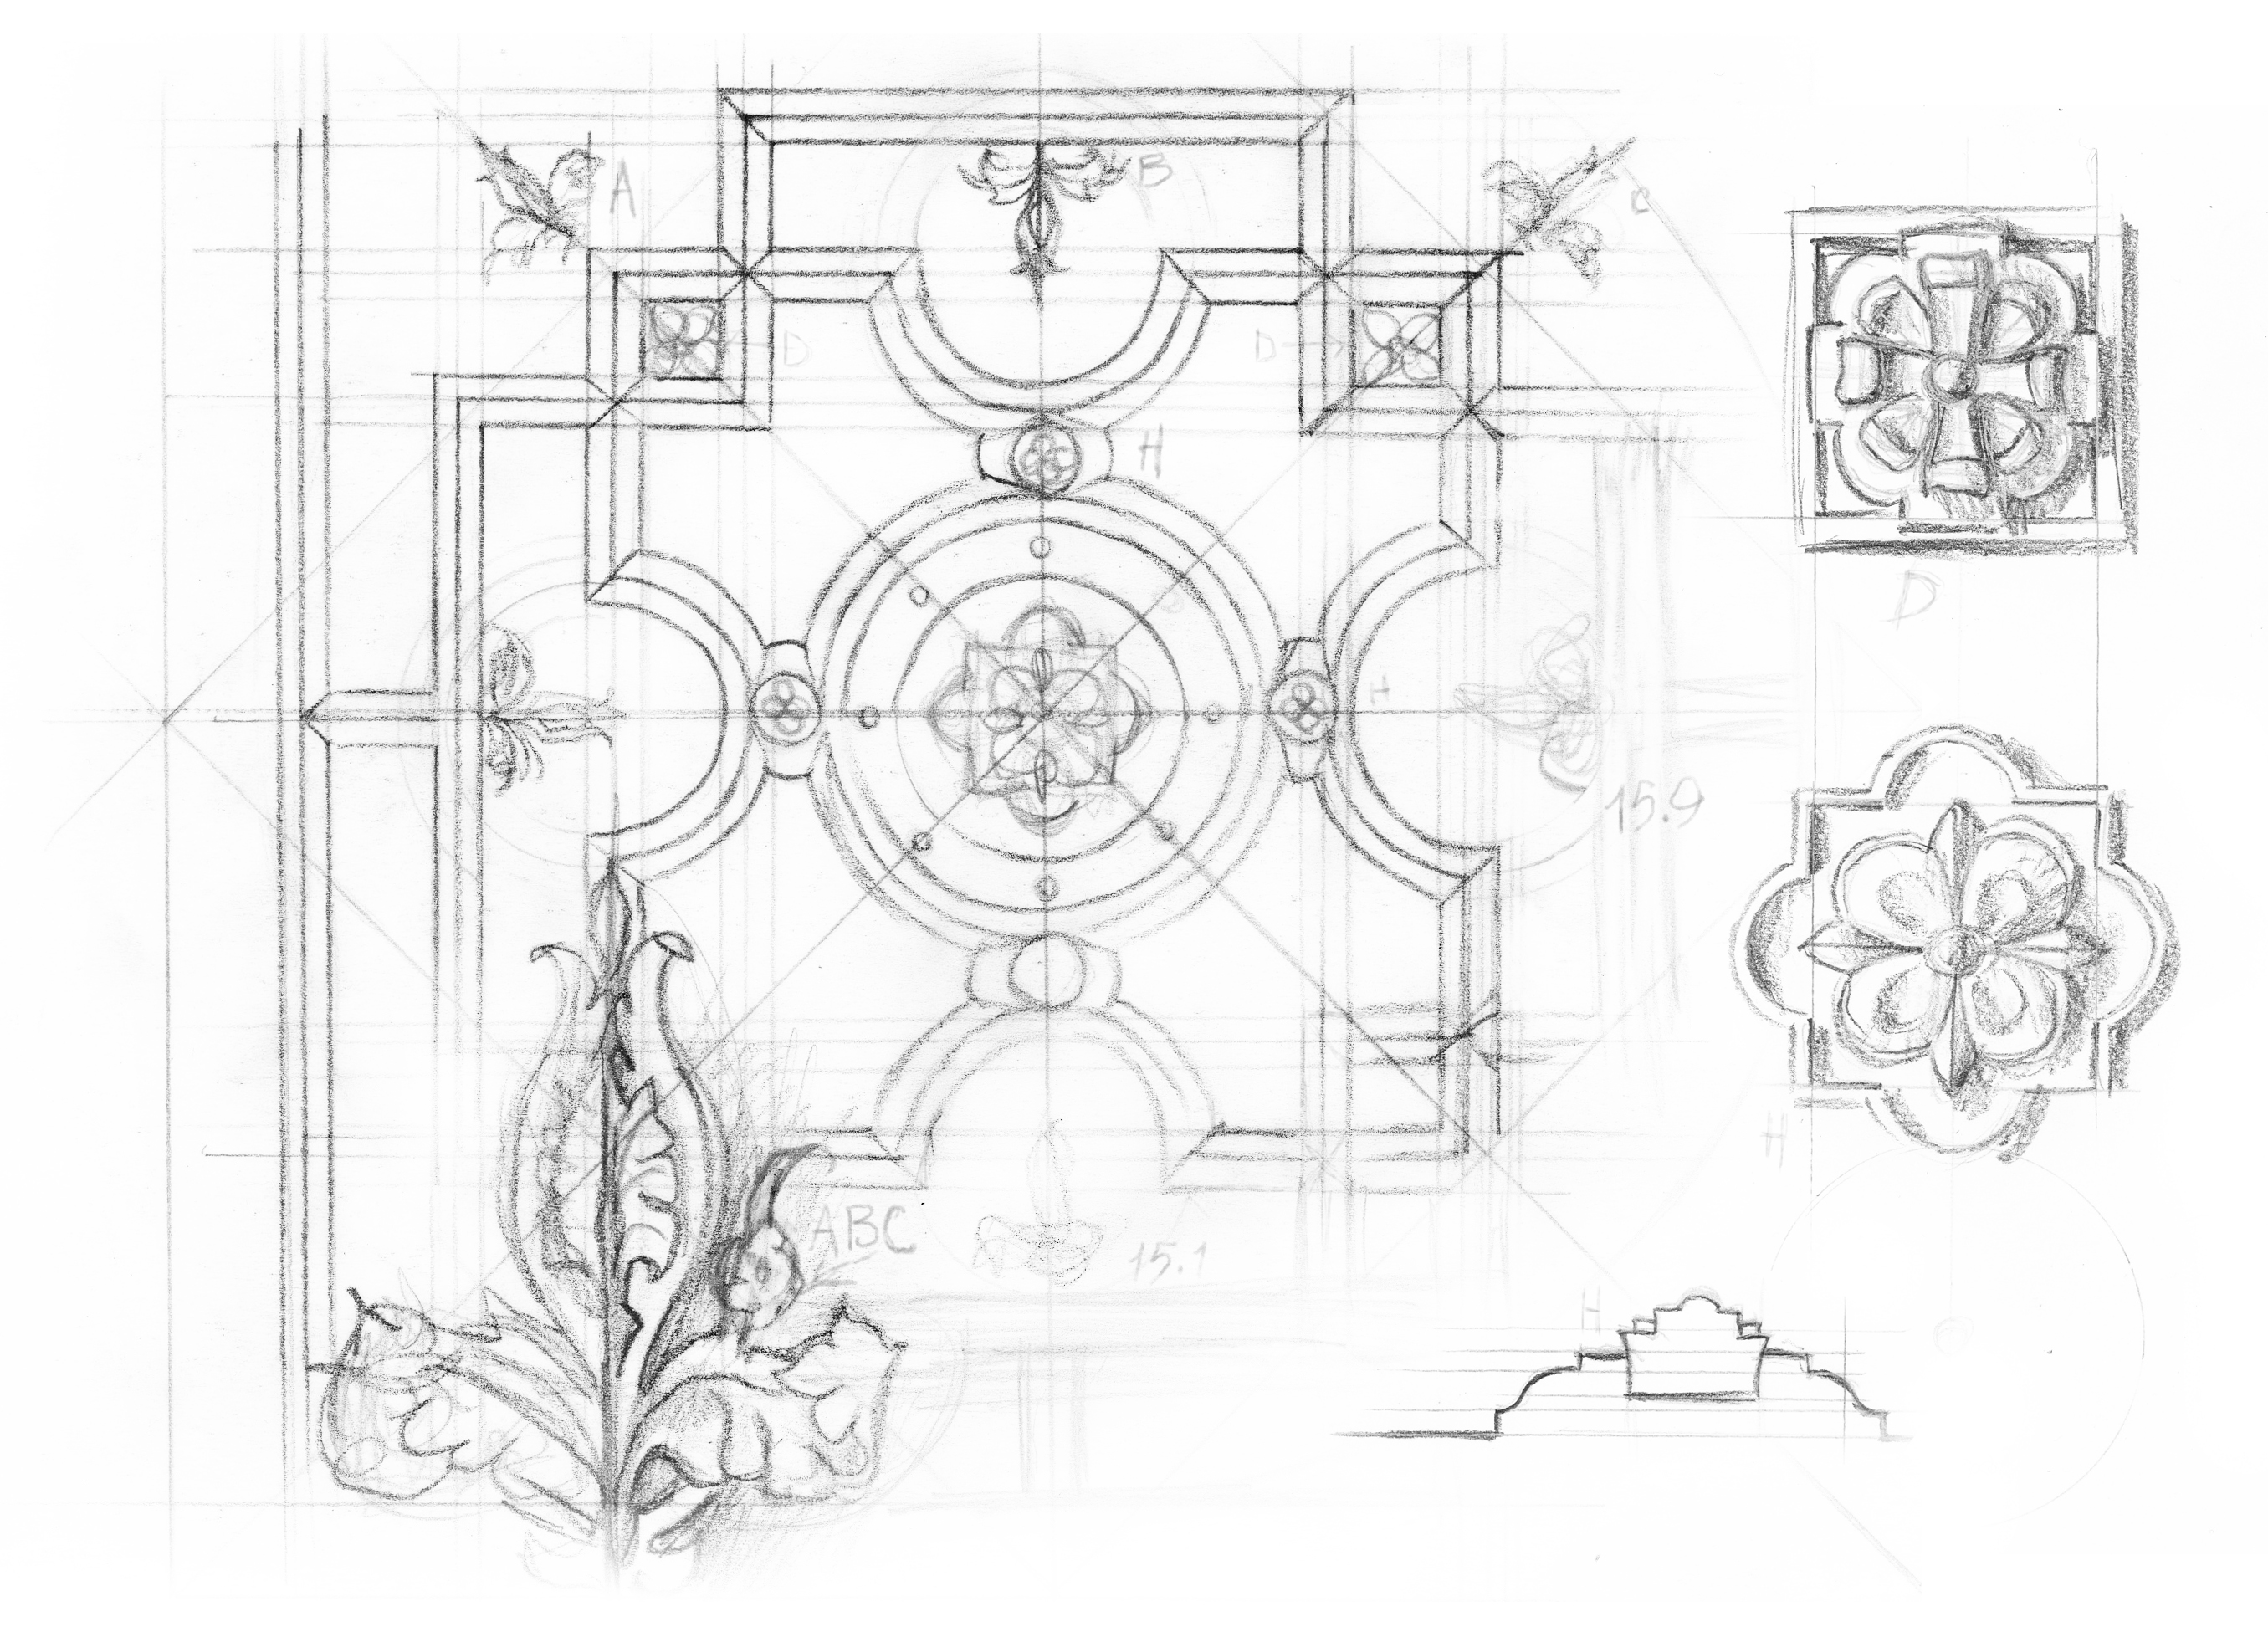 Ceiling 02 Rough Sketch - 02